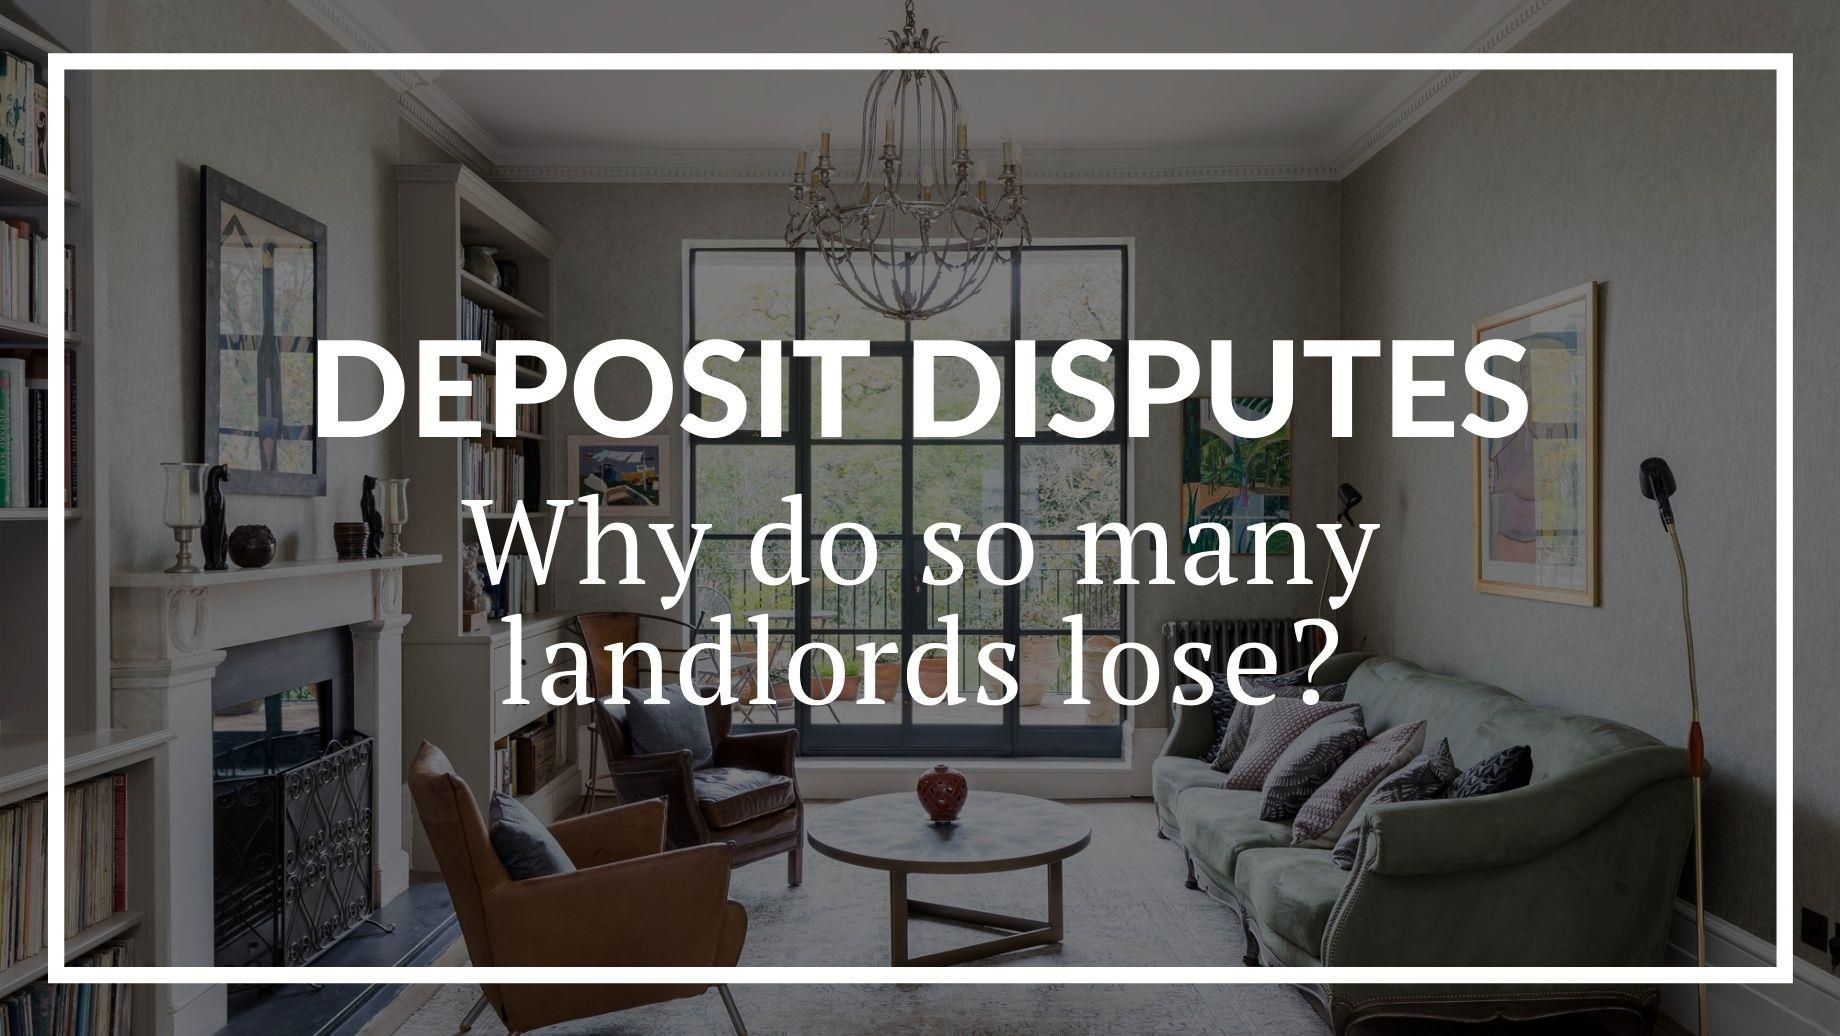 DEPOSIT DISPUTES: WHY DO SO MANY LANDLORDS LOSE?